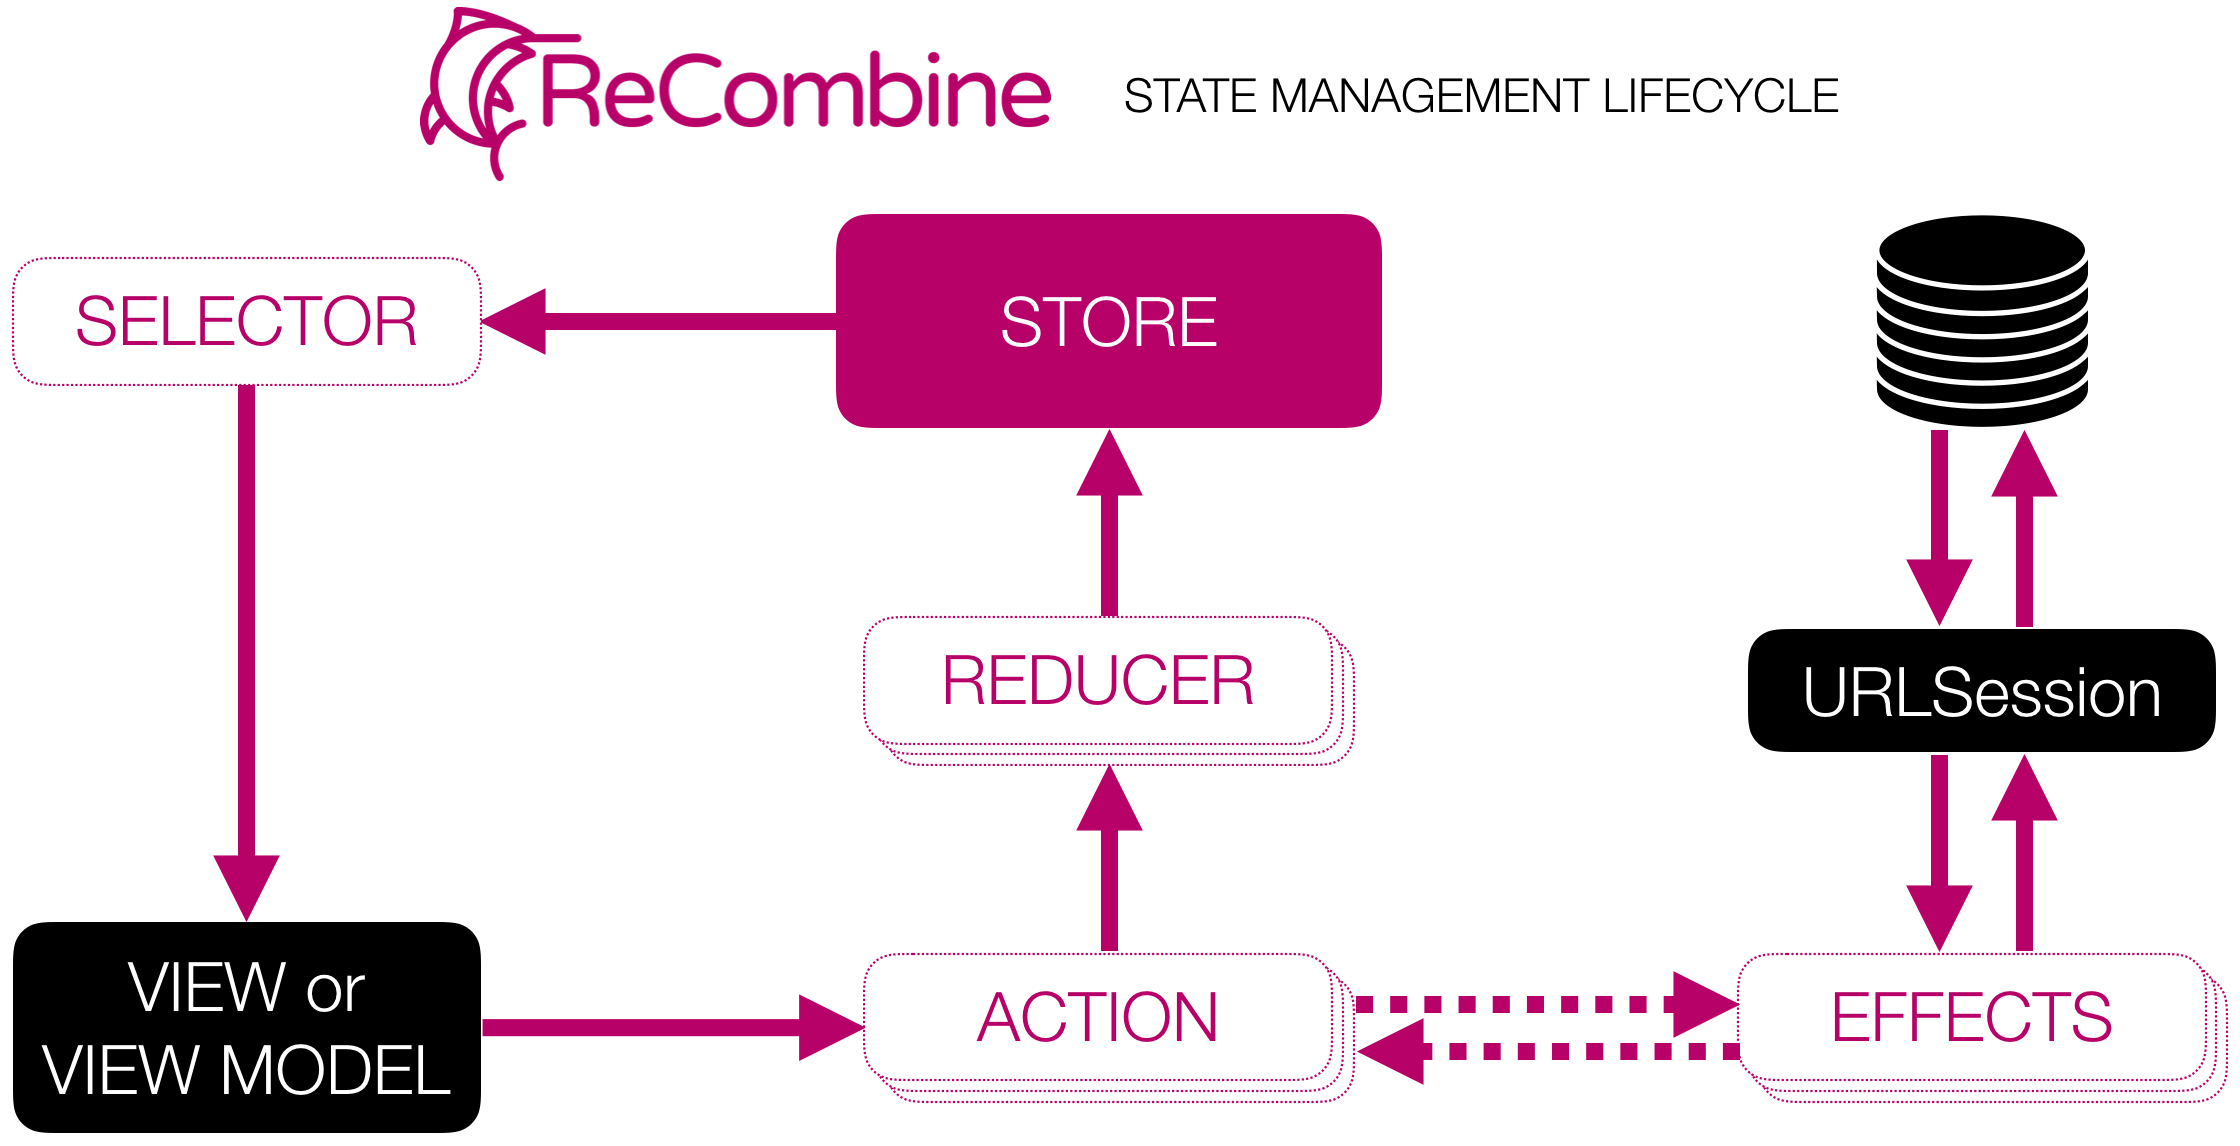 ReCombine State Management Lifecycle Diagram